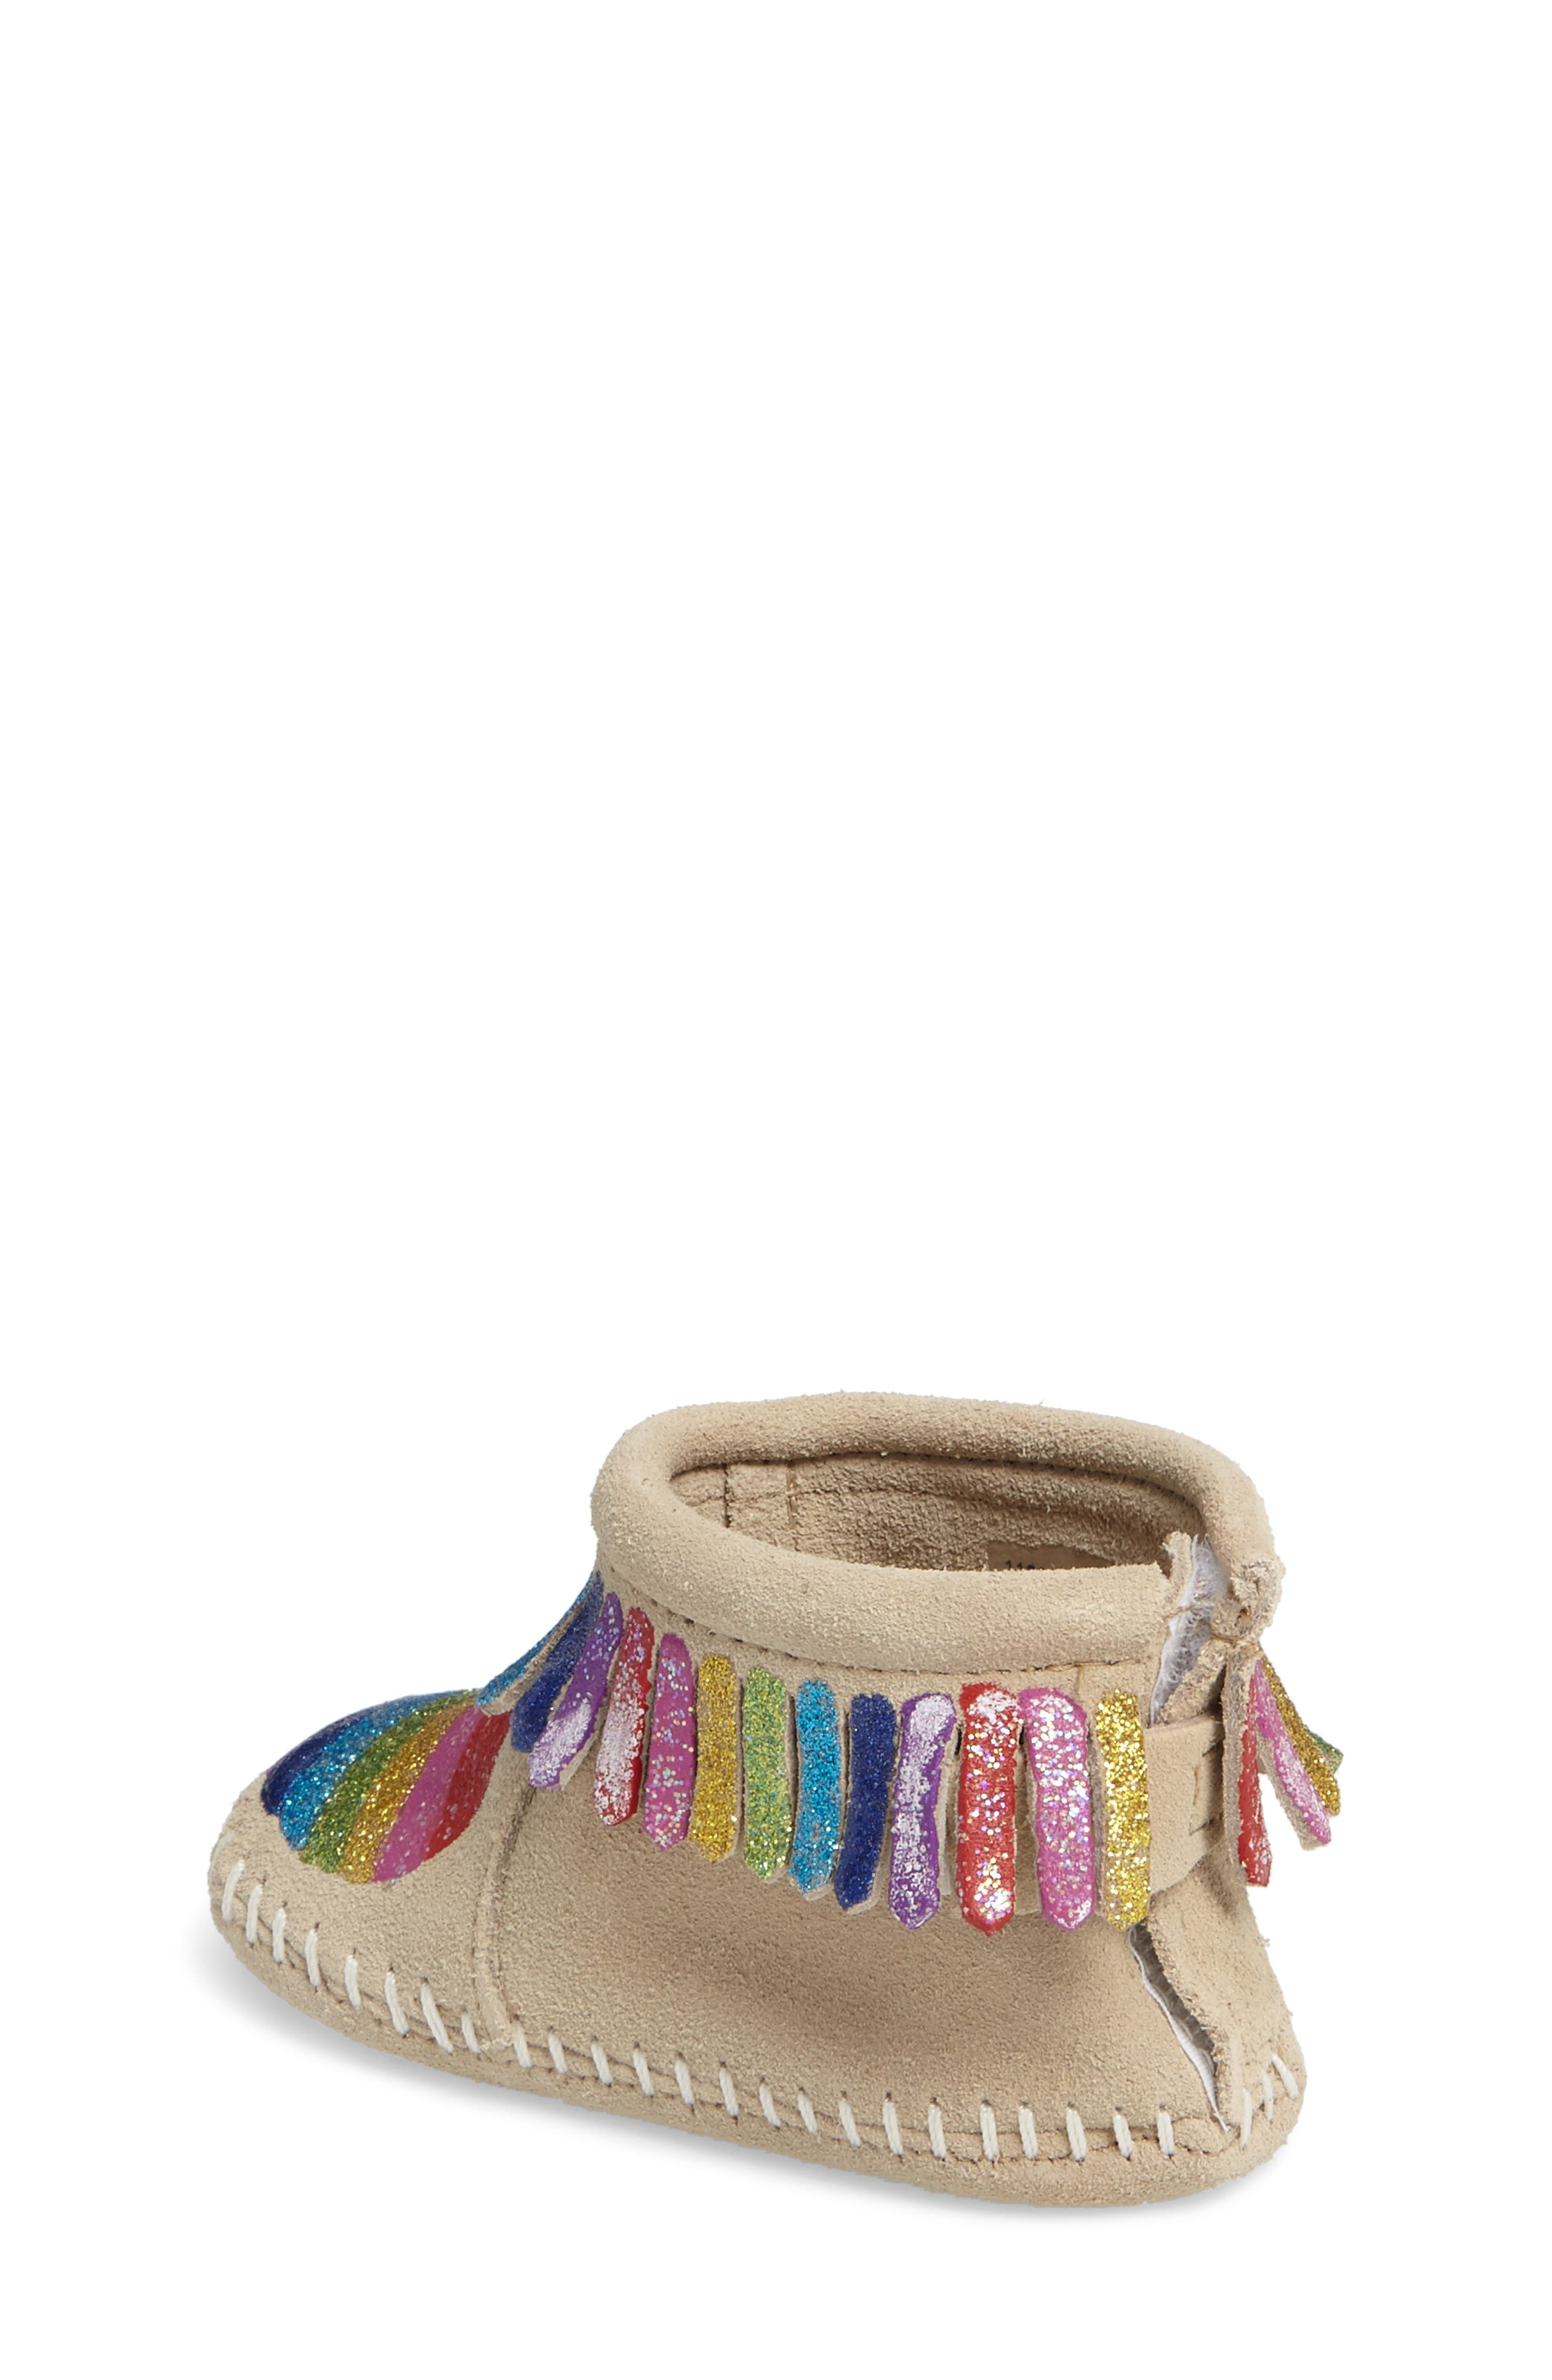 x Free Range Mama Love One Another Bootie,                             Alternate thumbnail 2, color,                             STONE